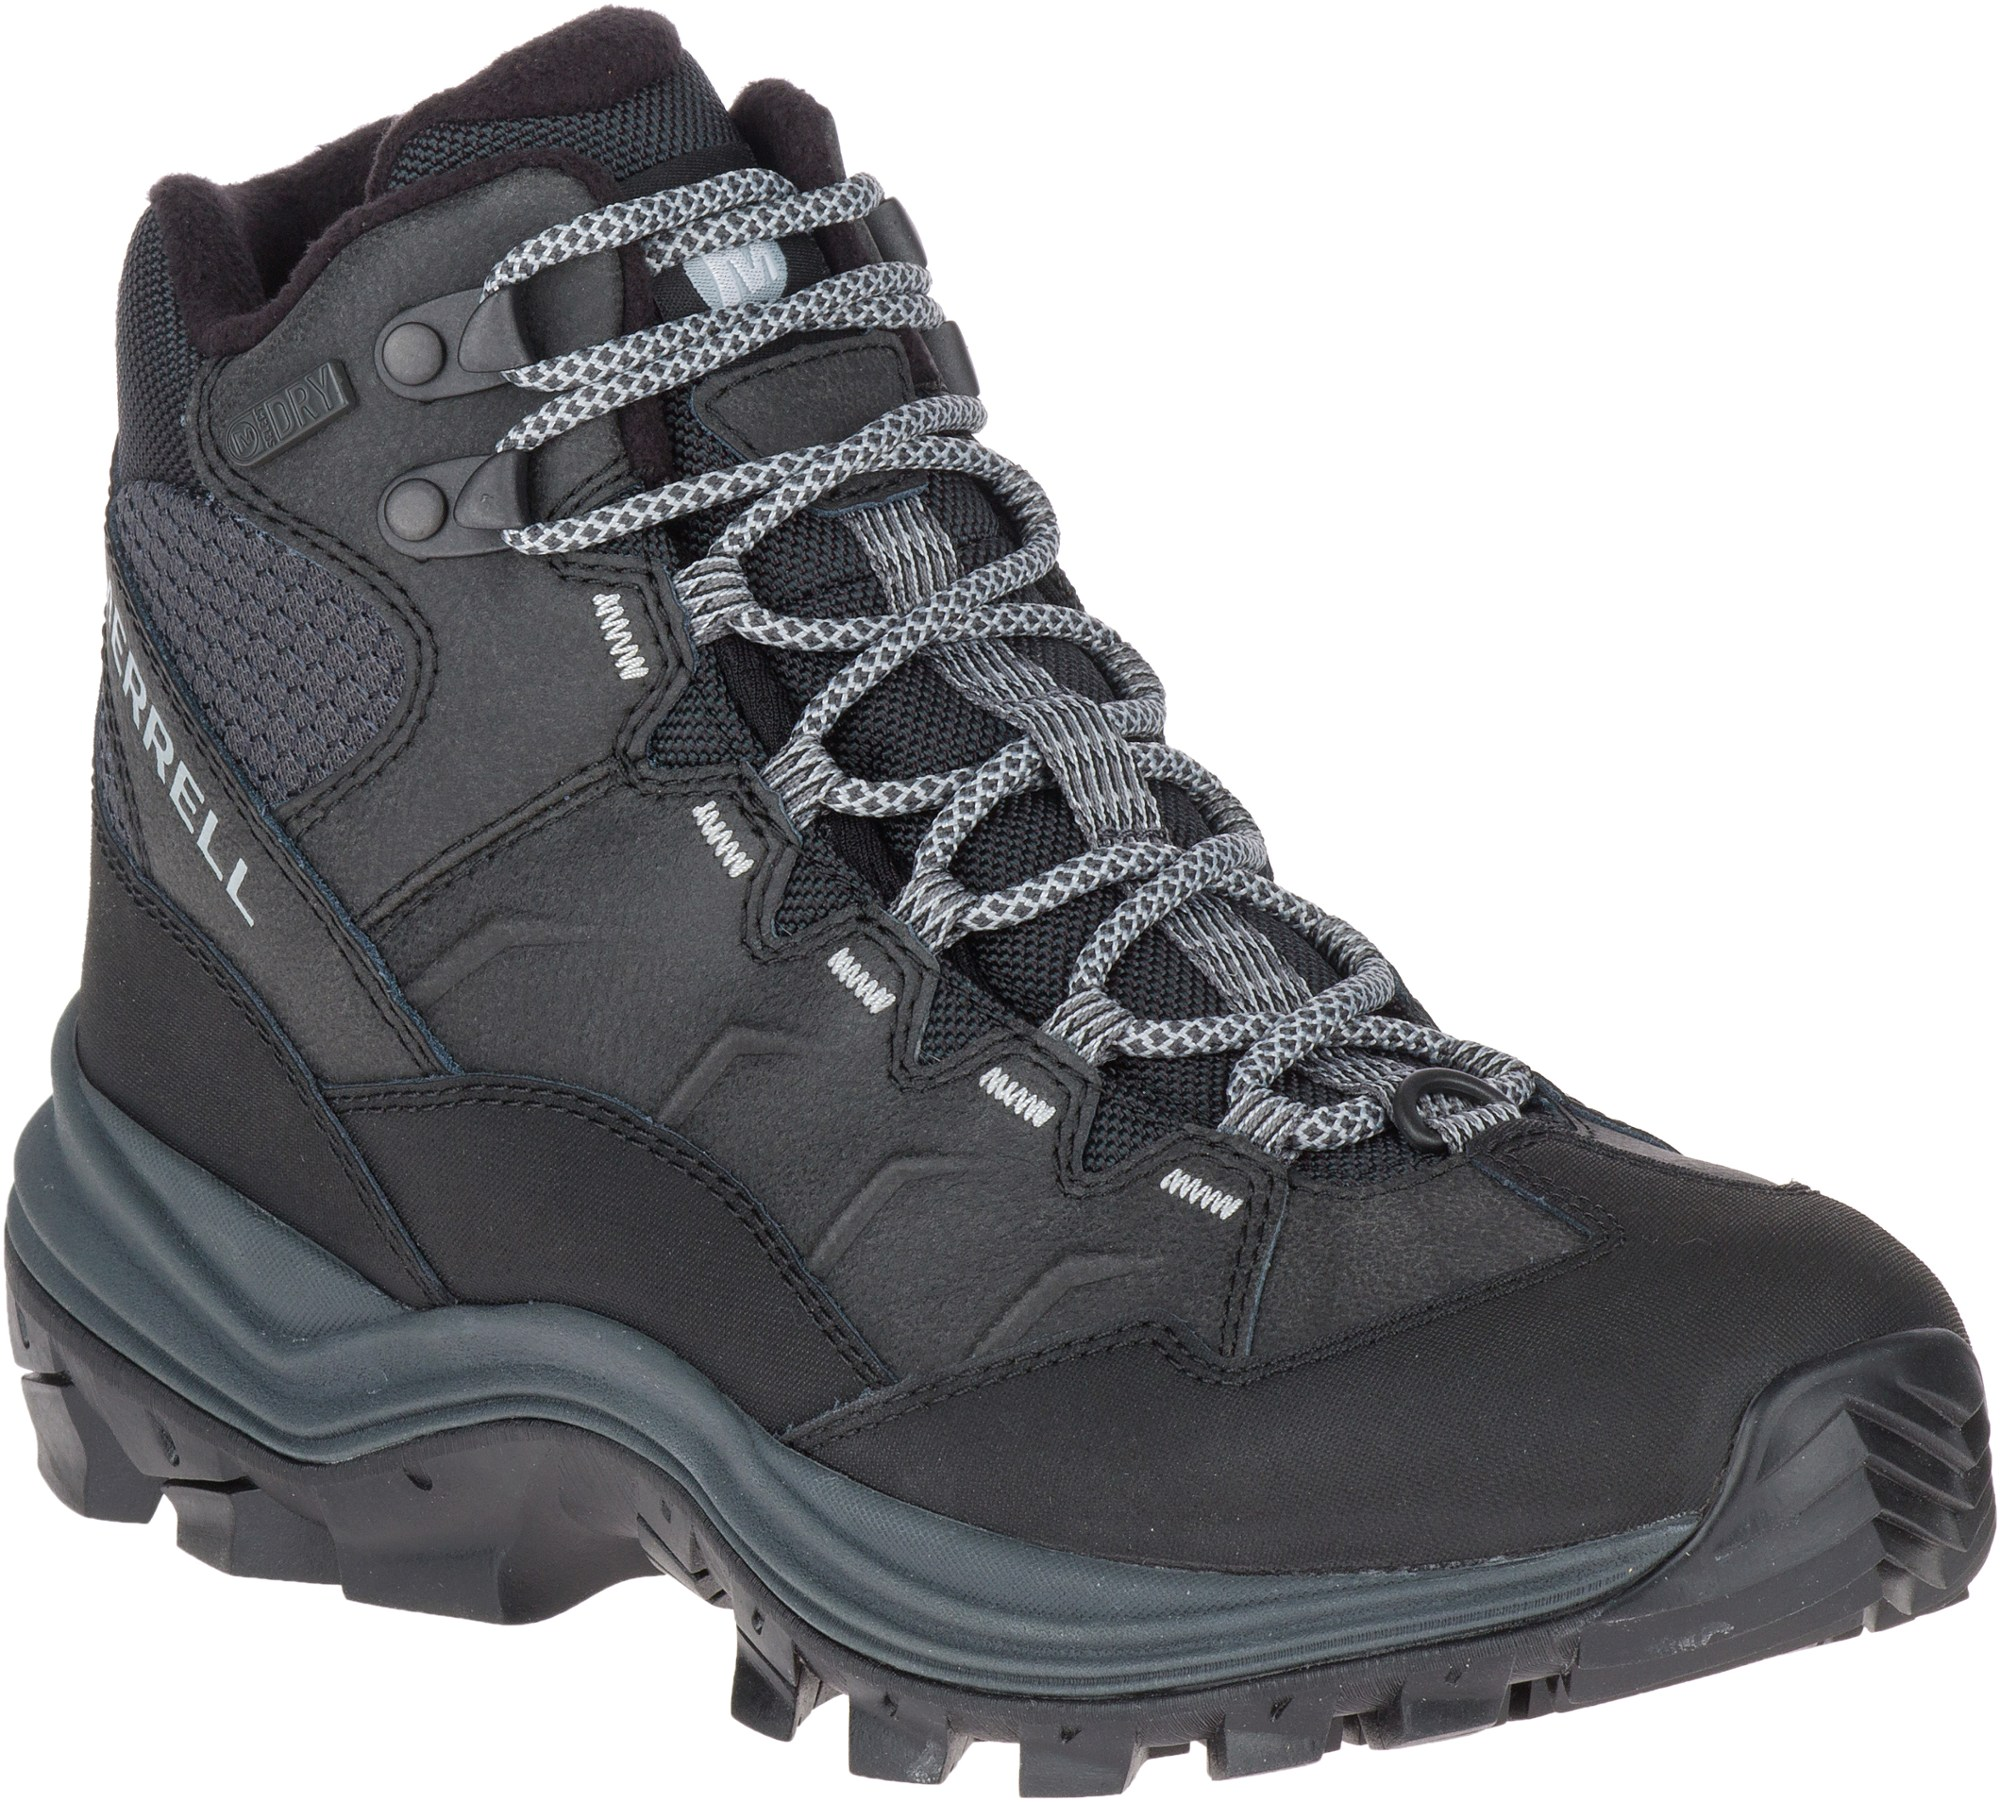 Merrell Thermo Chill Mid Waterproof Winter Hiking Boots - Women's